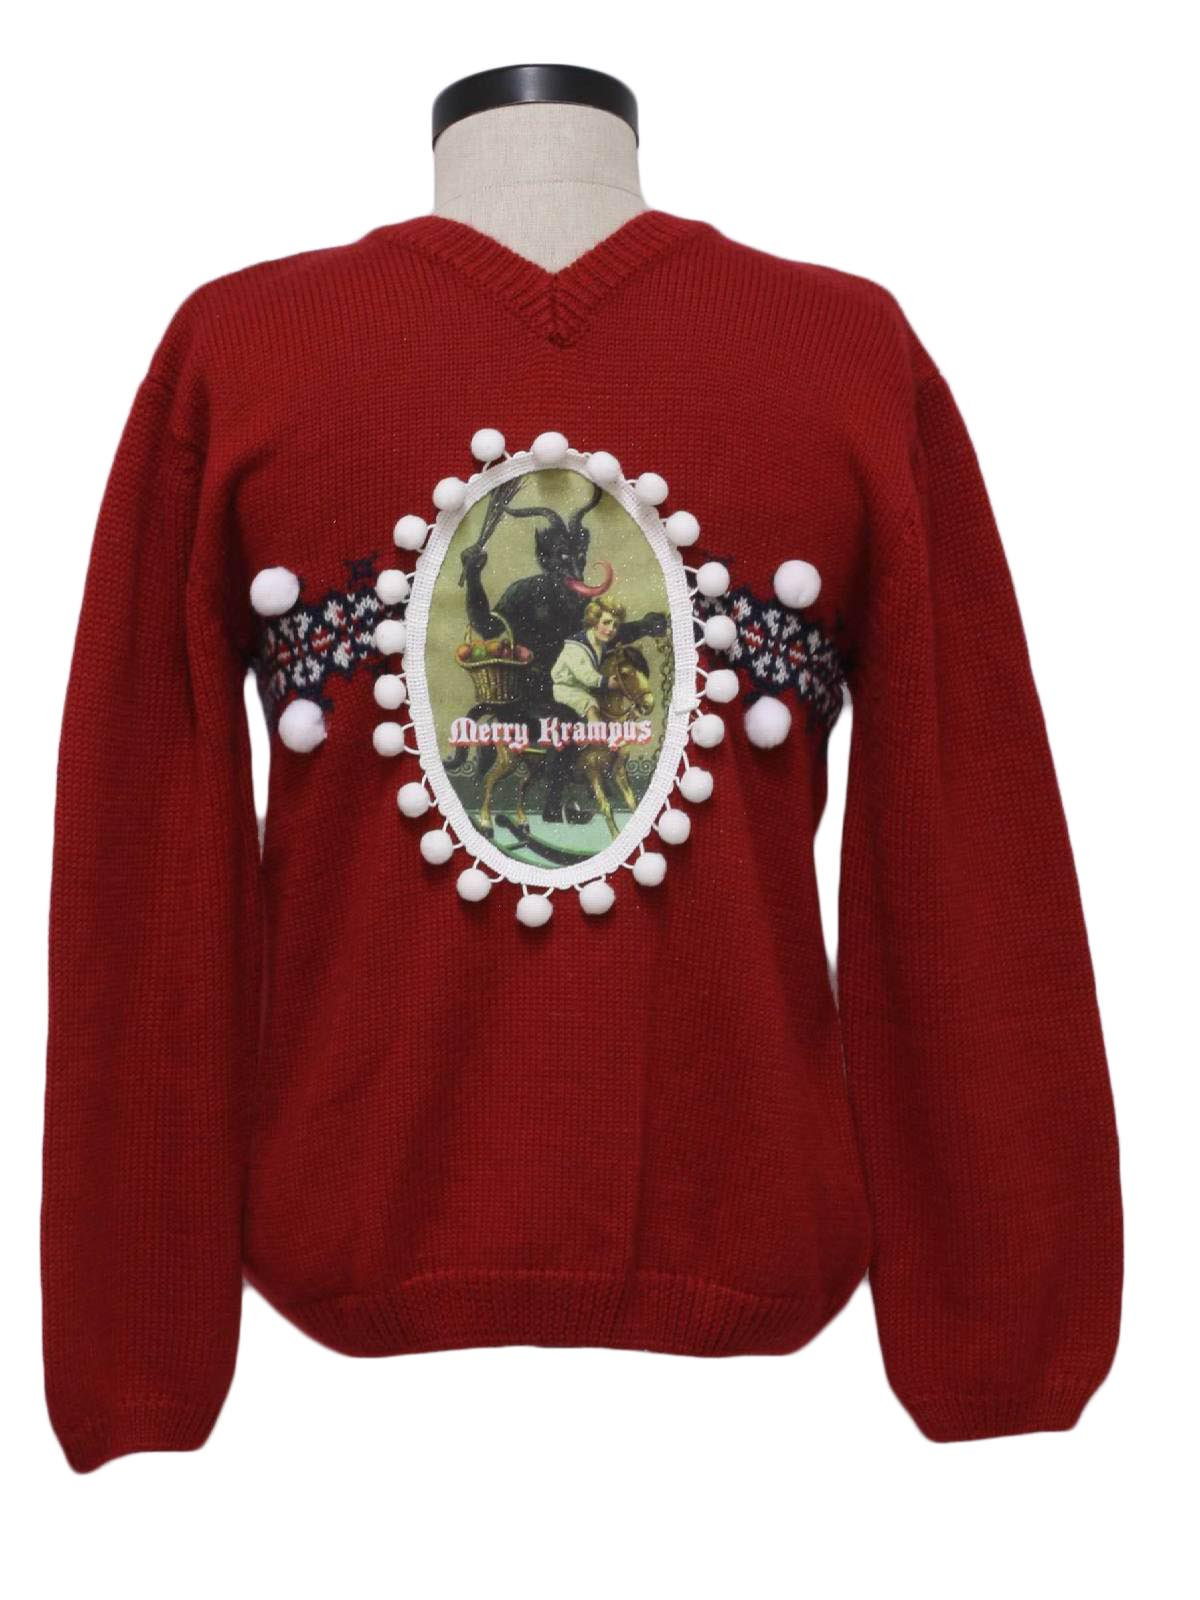 Womens or Girls Ugly Krampus Christmas Sweater: -Old Navy- Scare ...